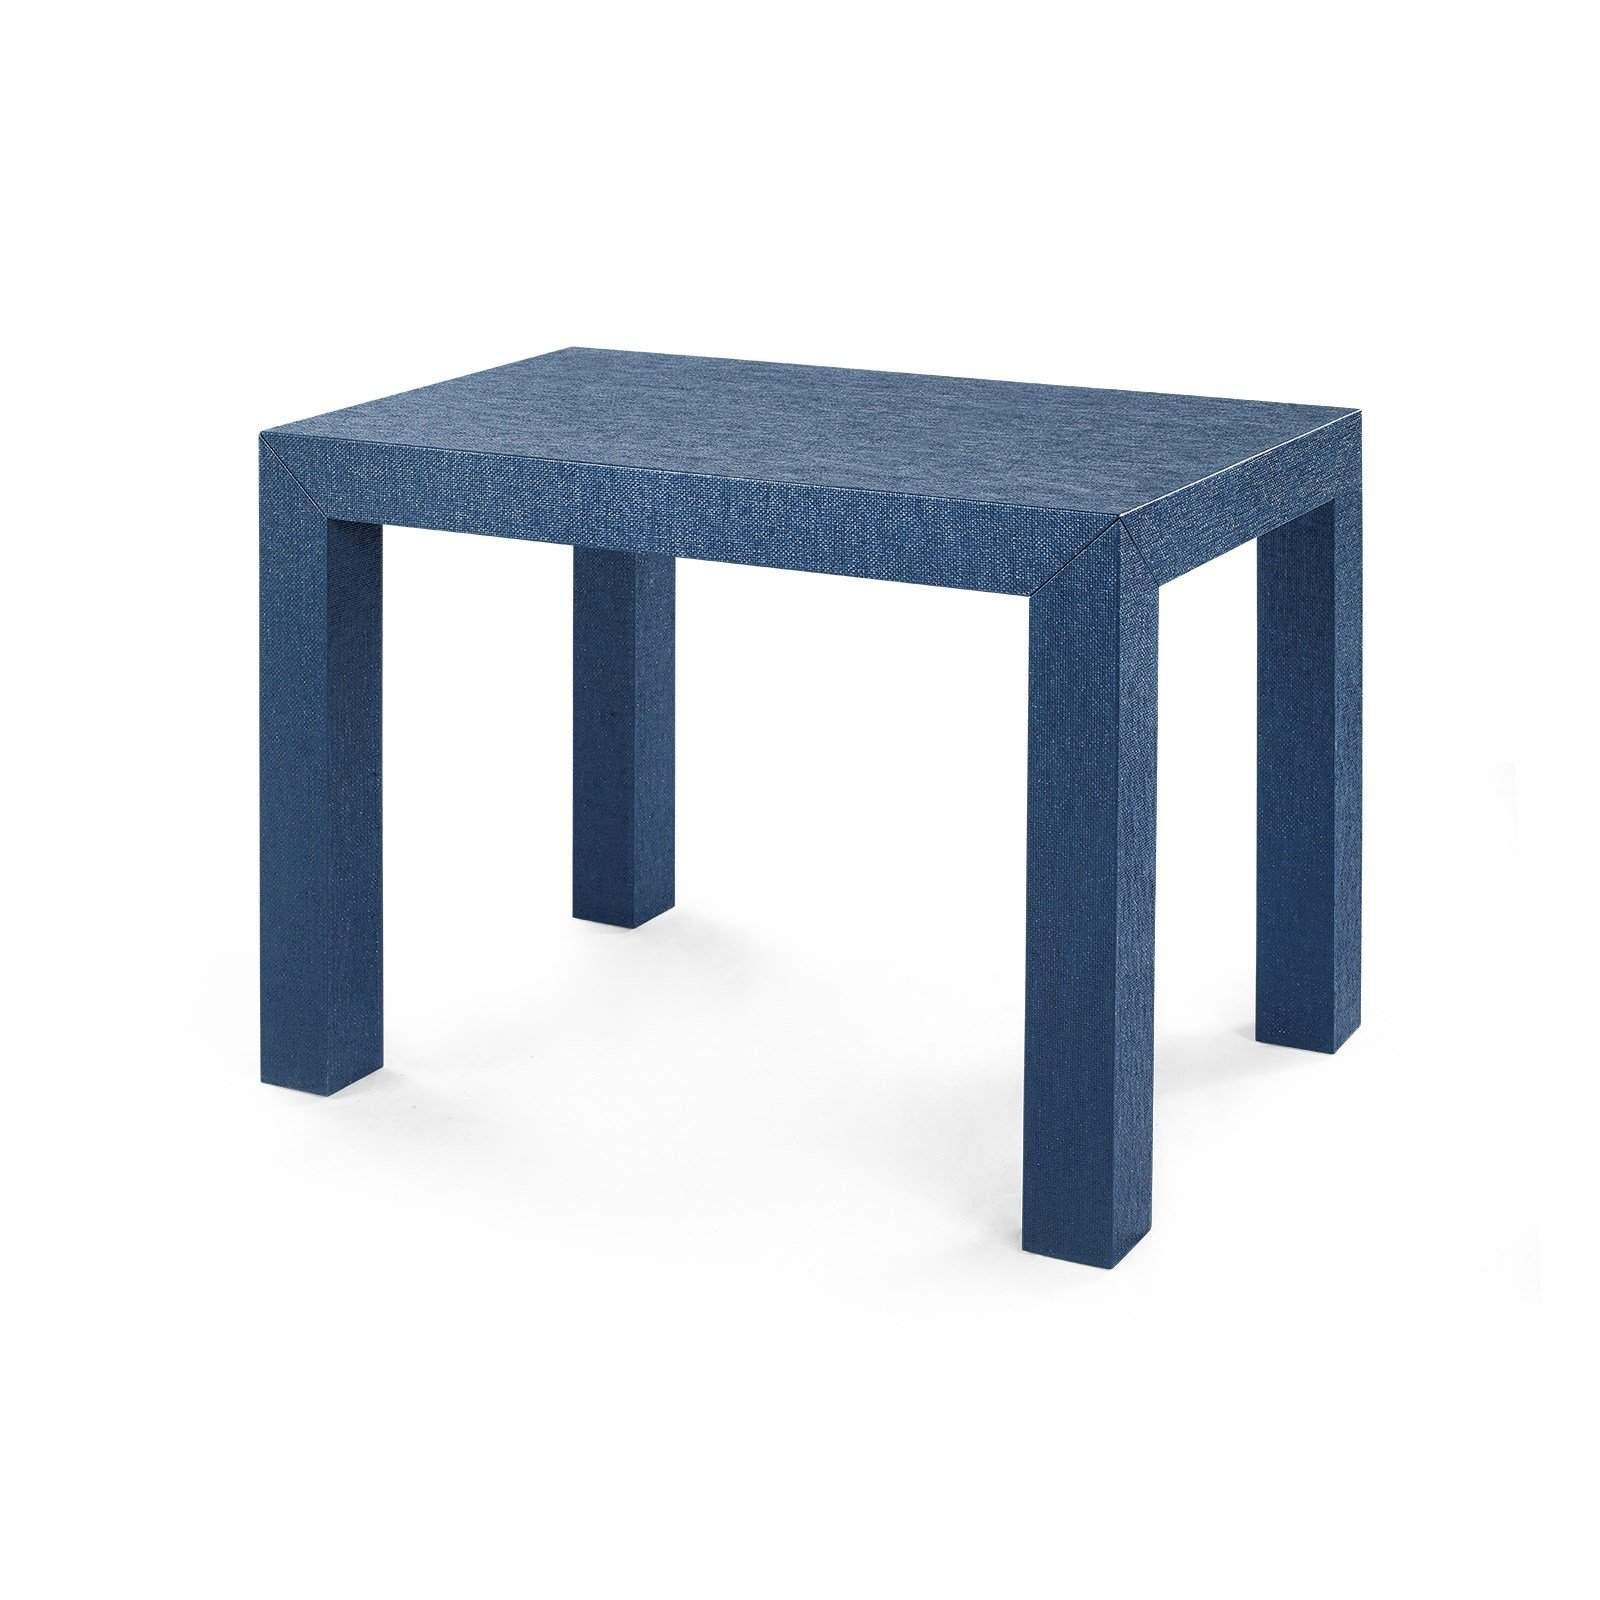 bungalow 5 parsons side table in navy blue. Black Bedroom Furniture Sets. Home Design Ideas